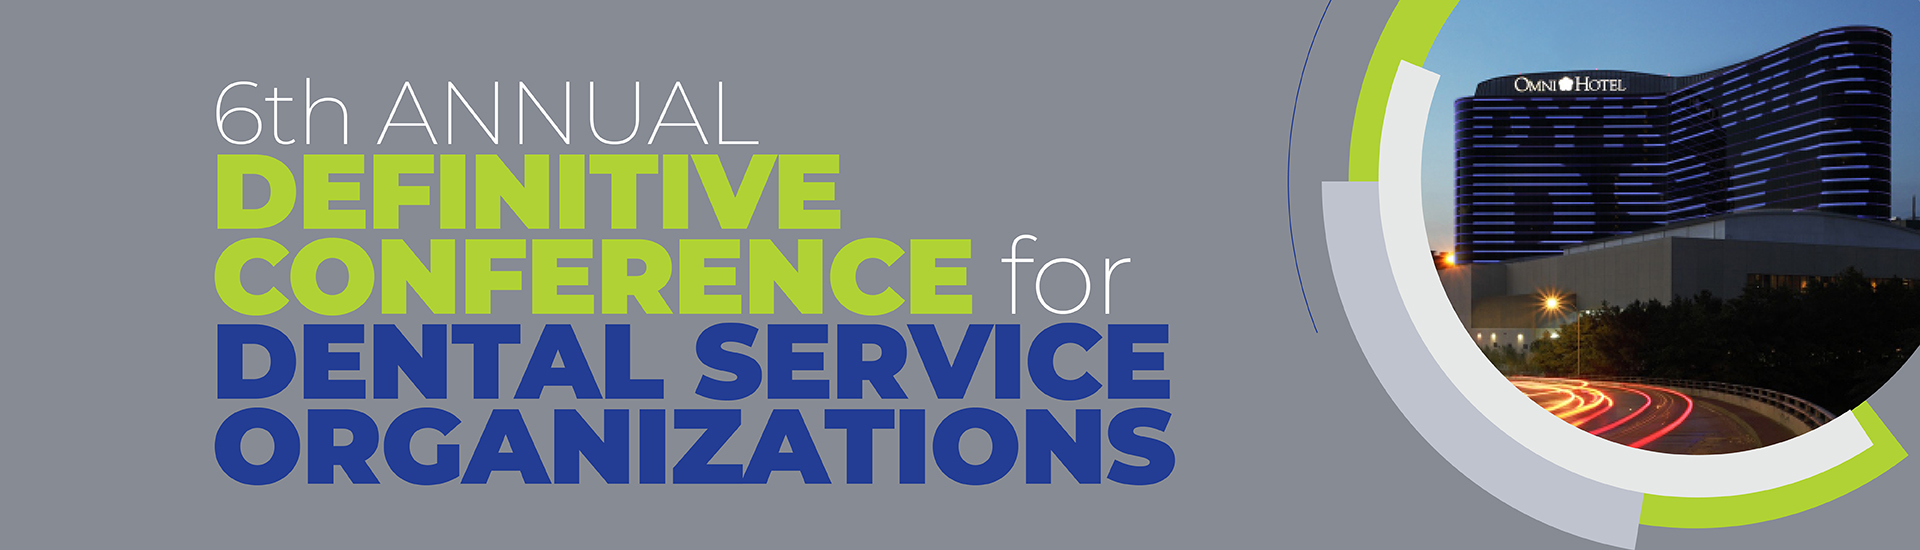 COPY OF The 6th Annual Definitive Conference for Dental Service Organizations